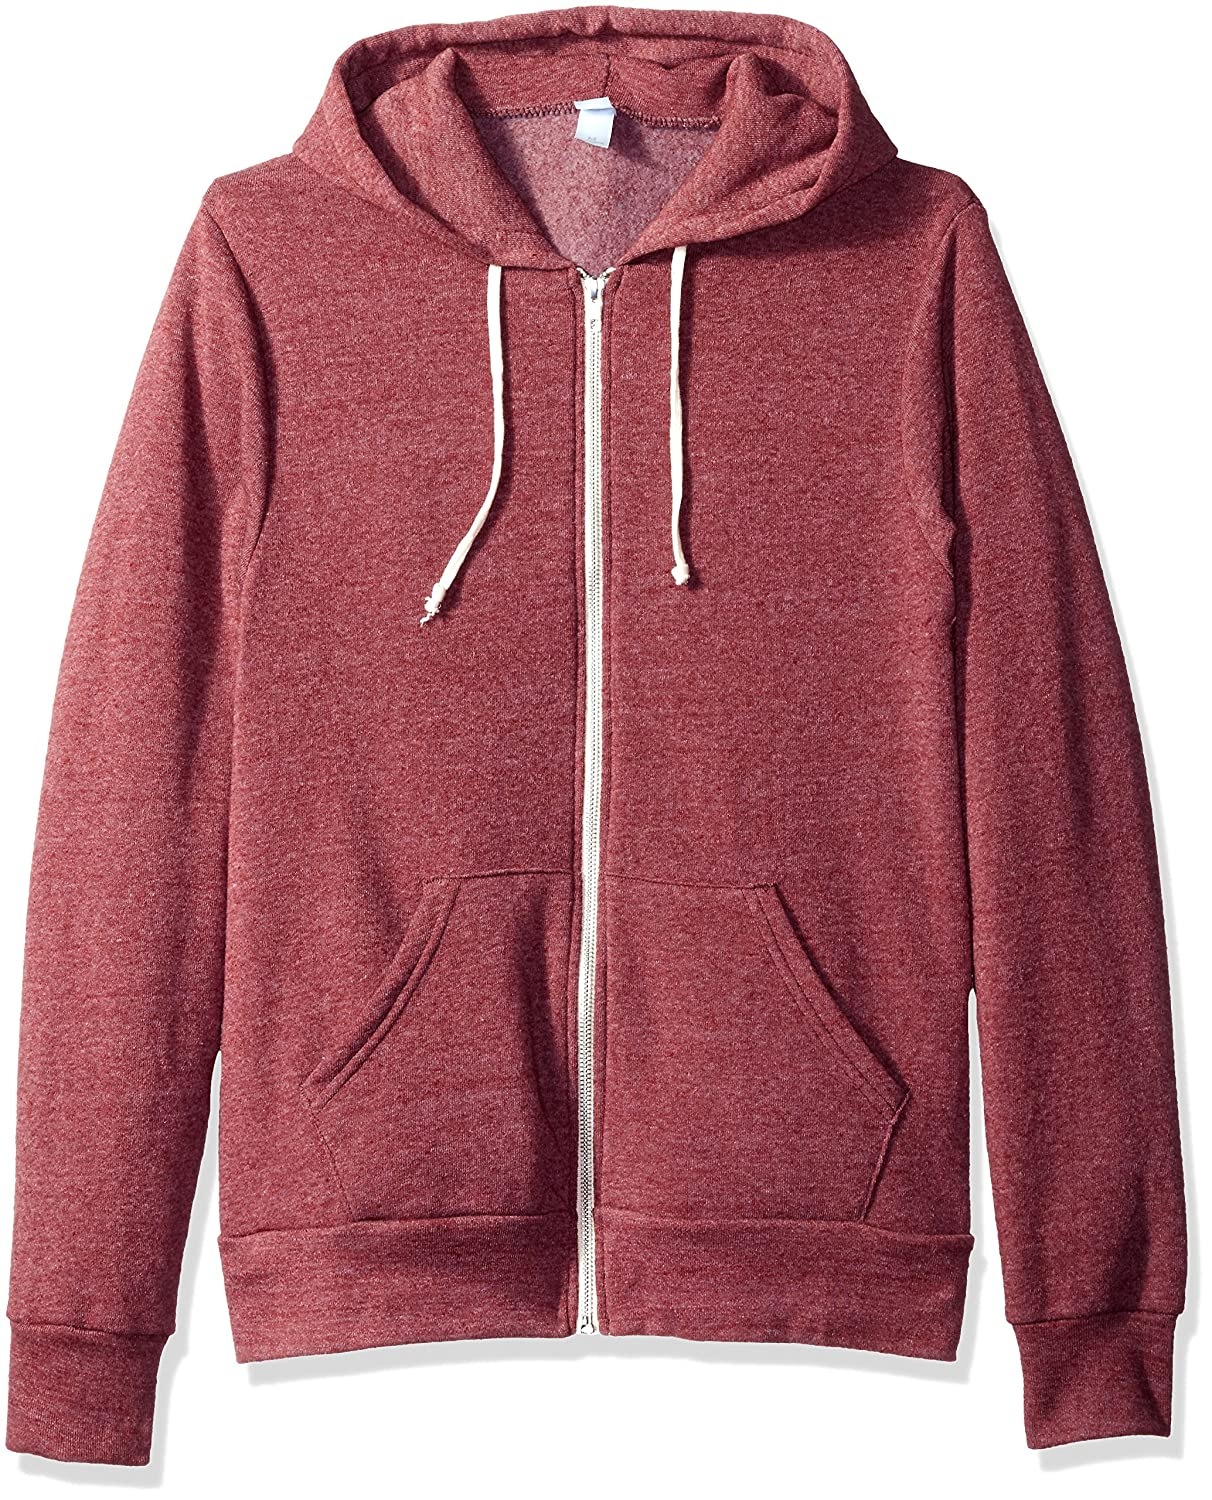 (オルタナティブ)Alternative Rocky Eco-Fleece Zip Hoodie B01DJKNBLW M|Eco True Currant Eco True Currant M